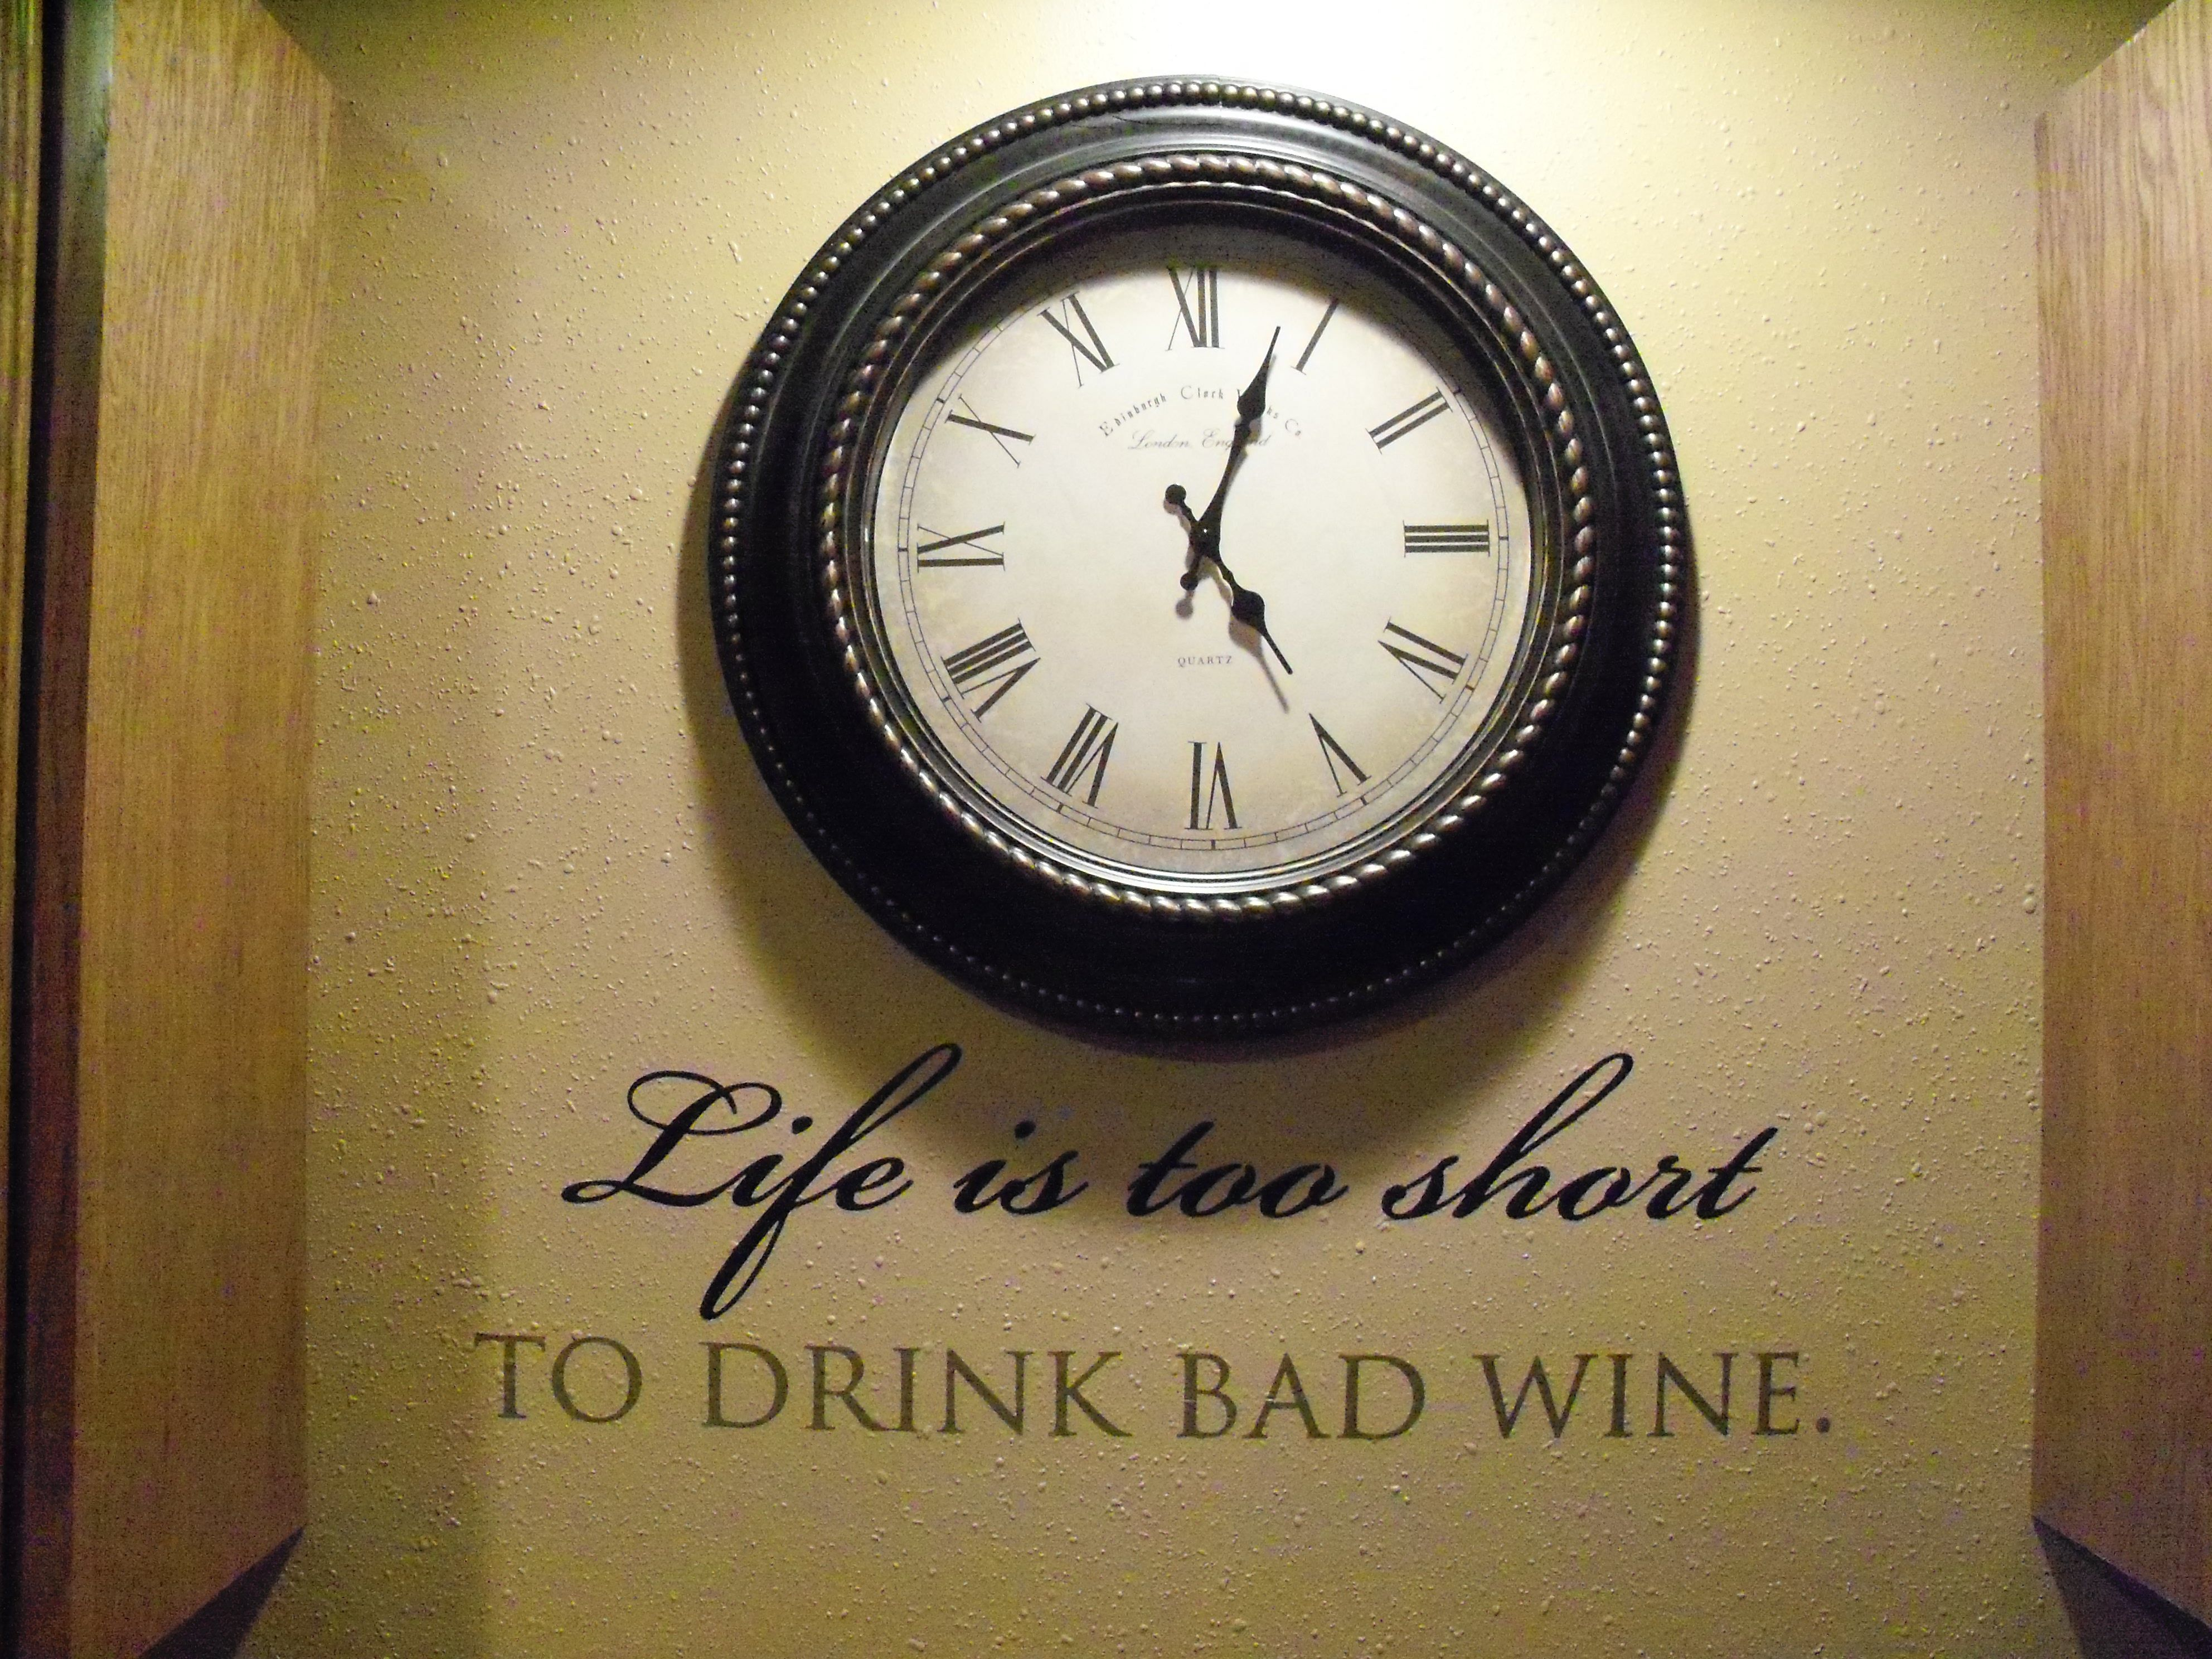 My new wall with clock and wine saying in my basement my dream